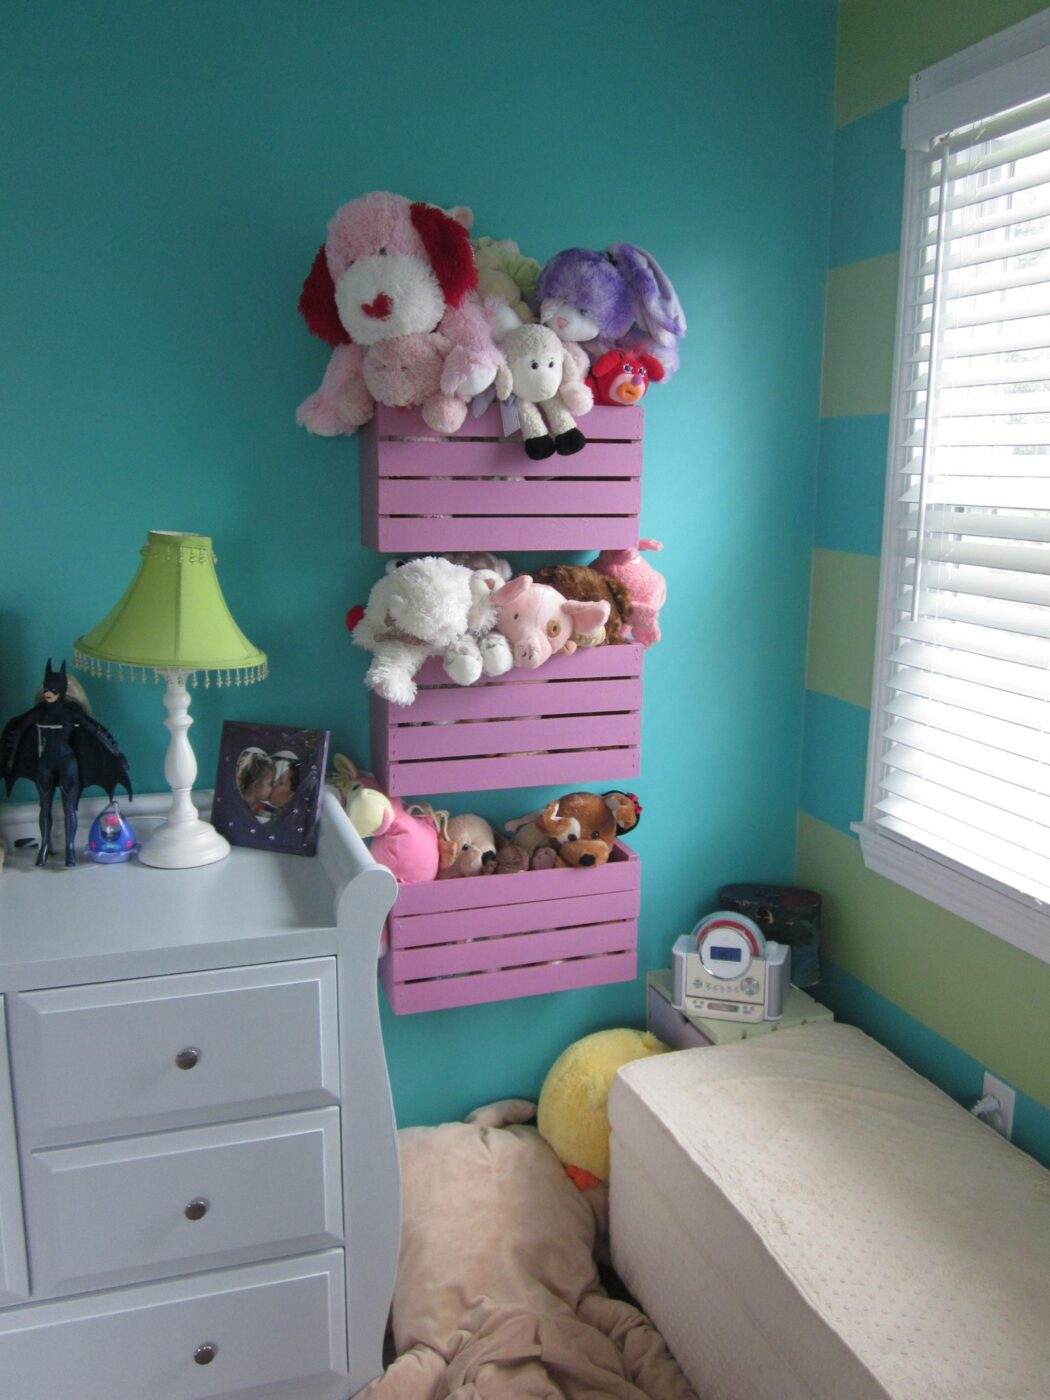 20+ Creative DIY Ways to Organize and Store Stuffed Animal Toys --> Crates Mounted on the Wall as Storage Bins for Stuffed Animals